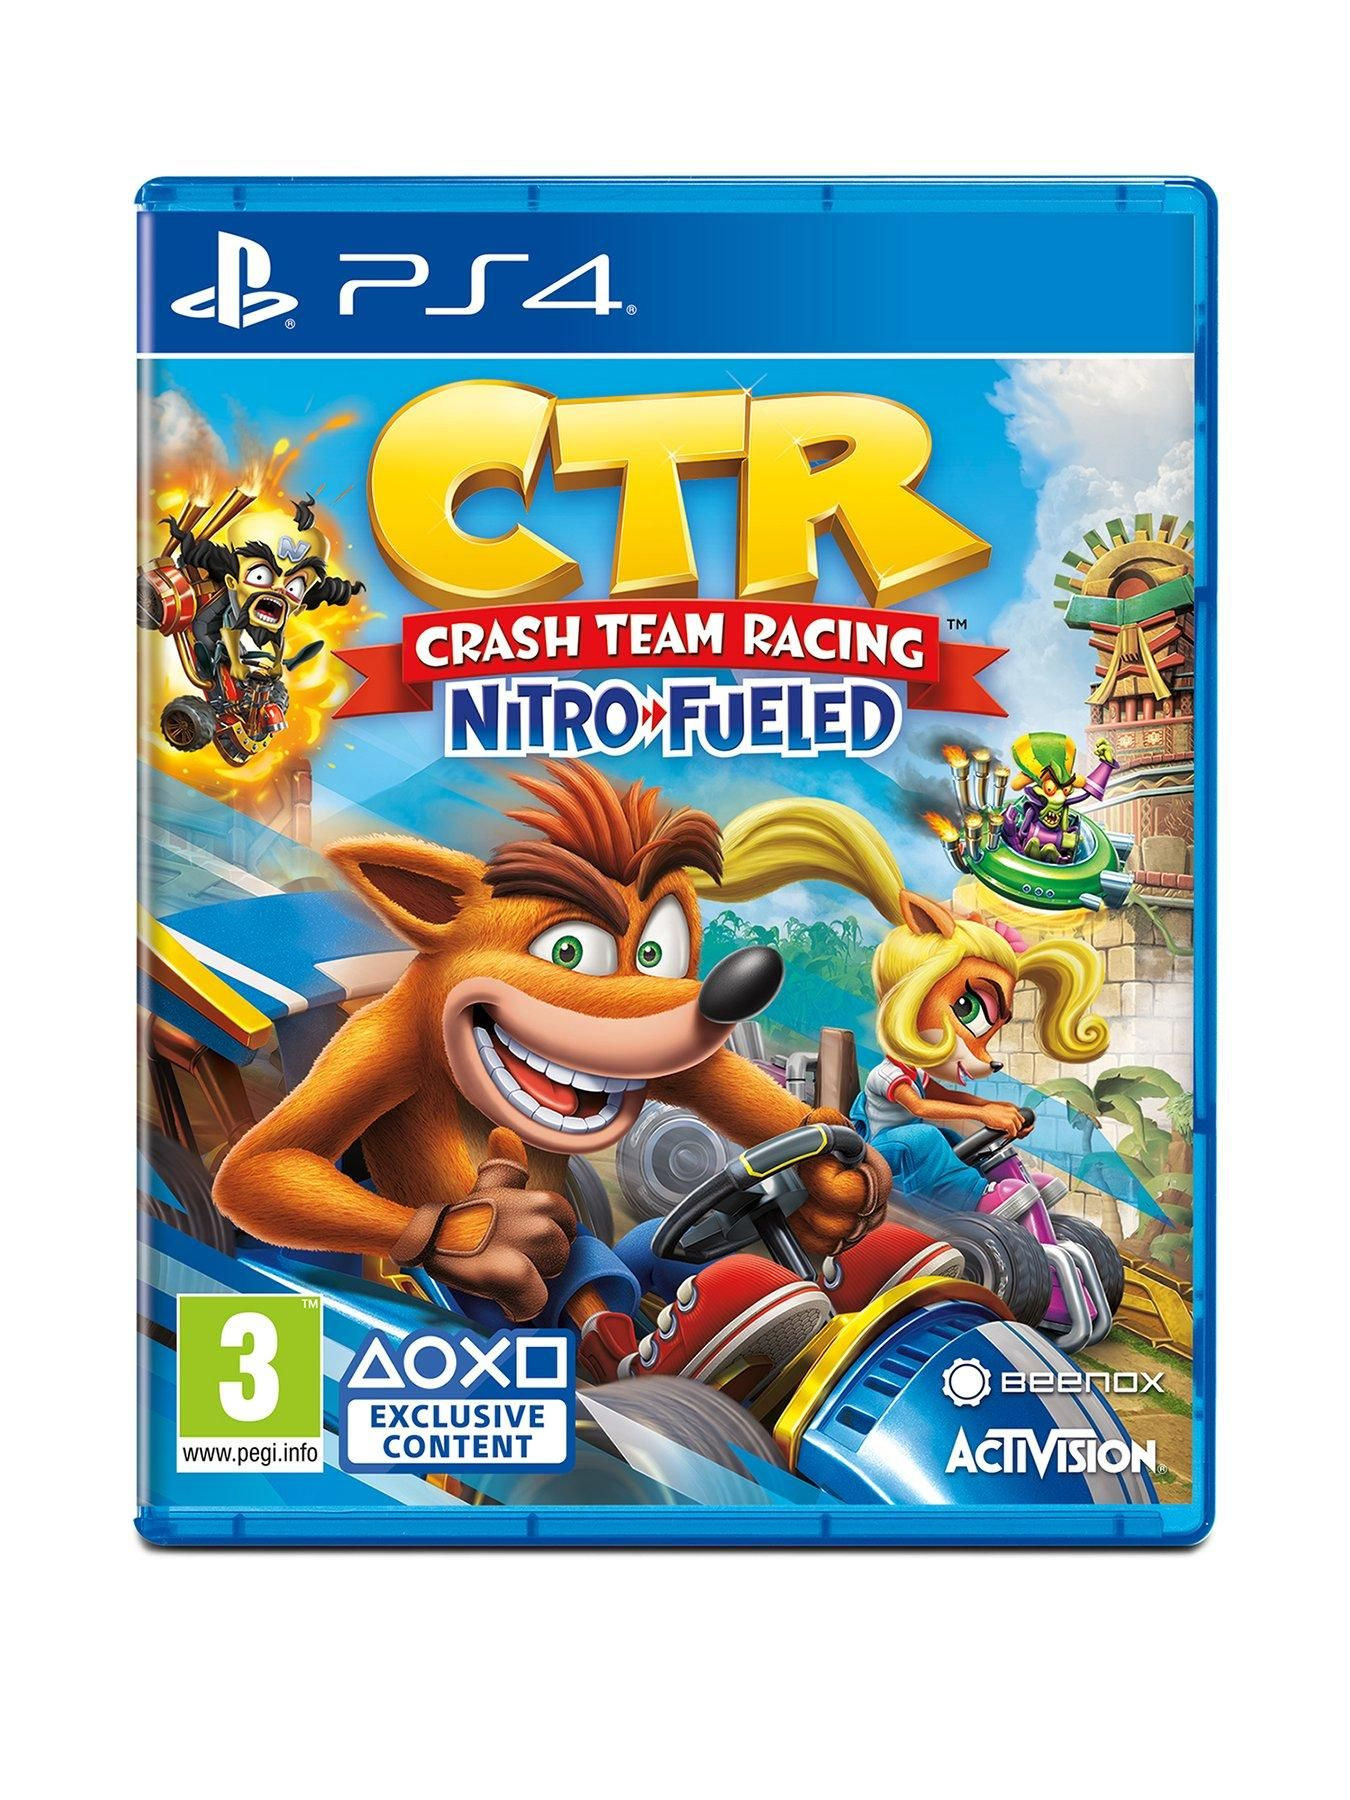 Crash Team Racing NitroFueled PS4 Crash team racing